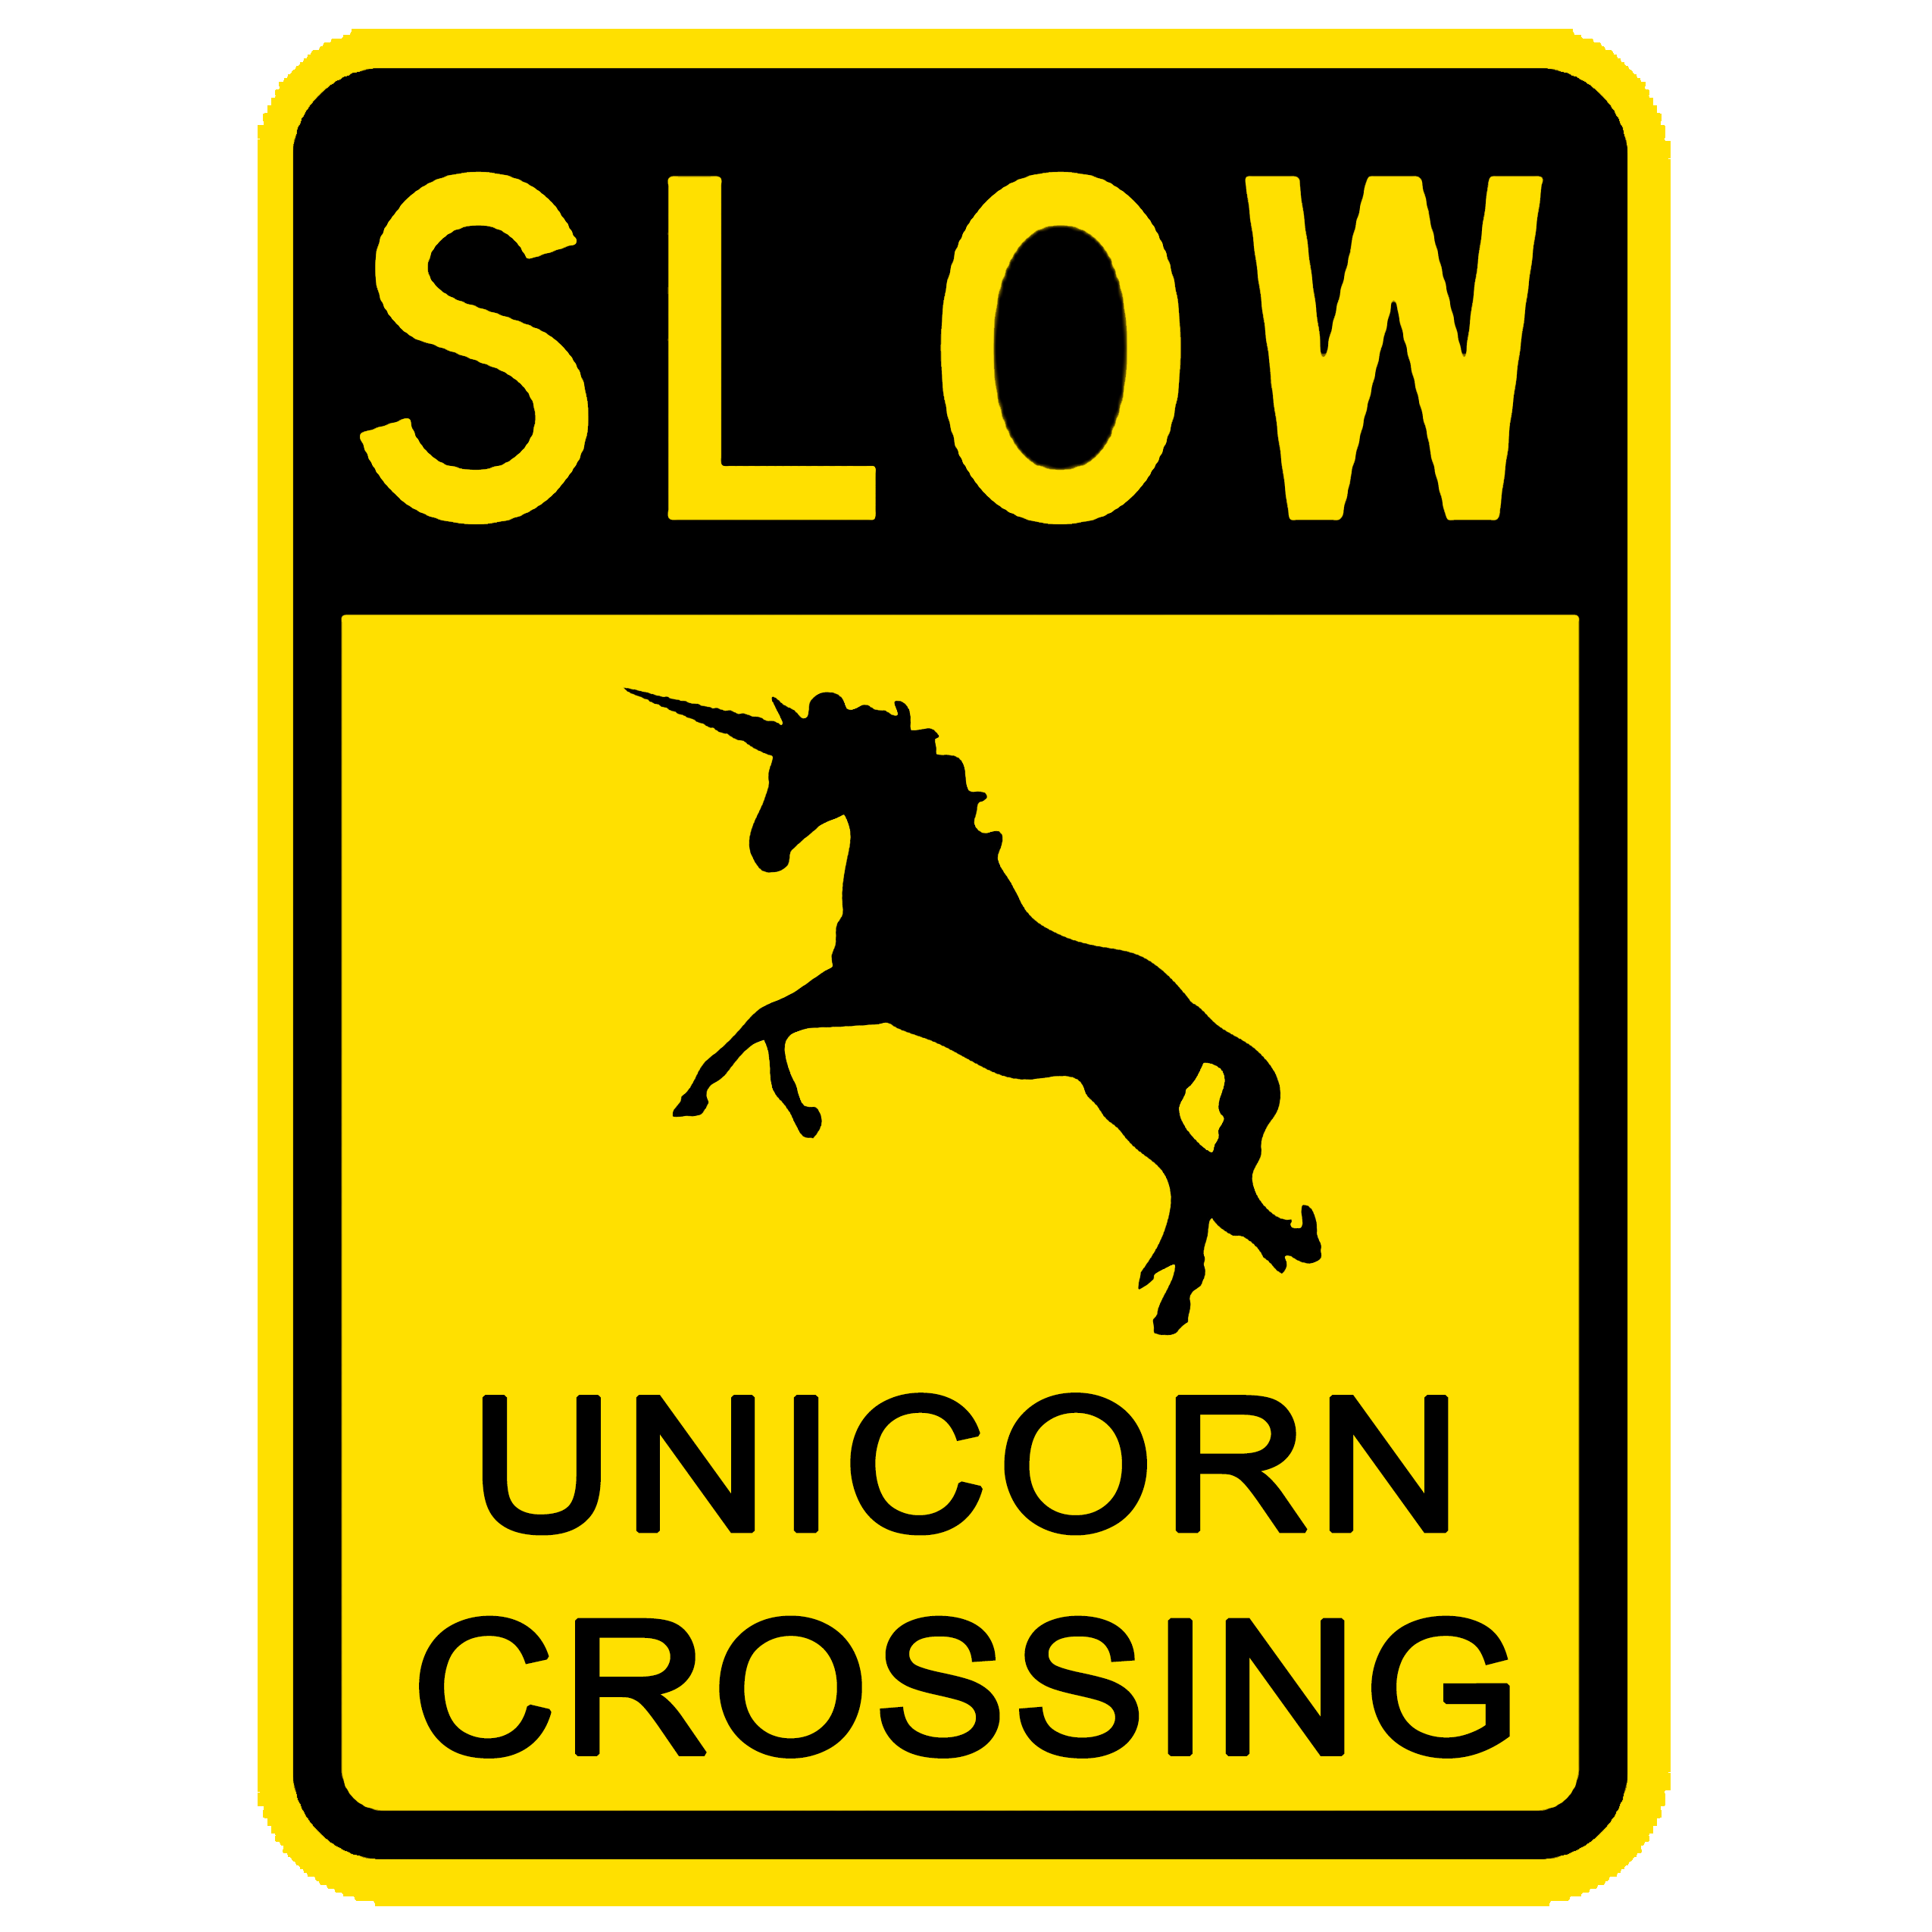 SLOW UNICORN CROSSING FUNNY SIGN PNG HD HQ - Woo Hoo PNG HD